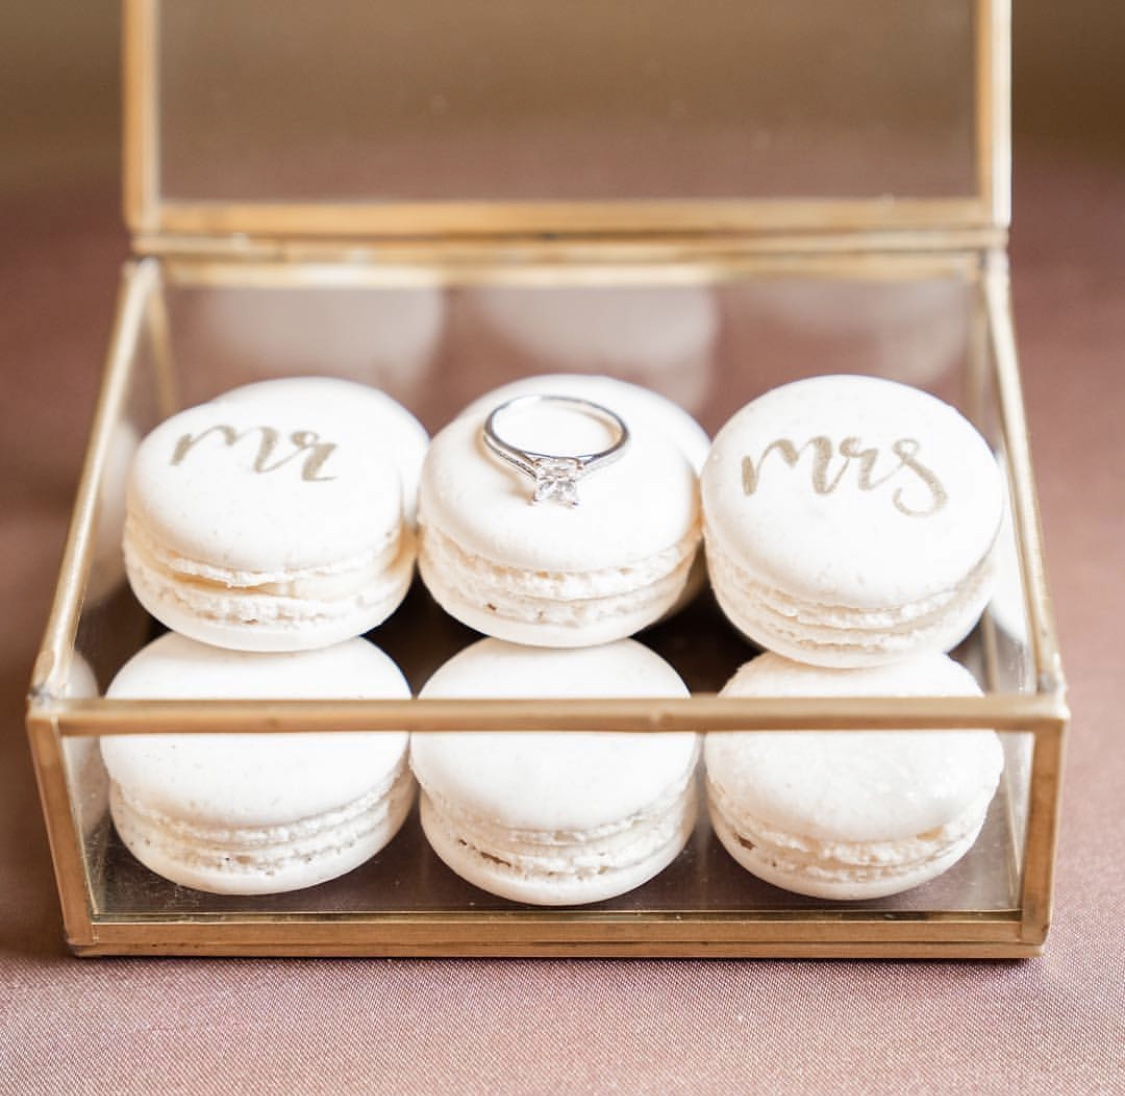 Mr and mrs macarons